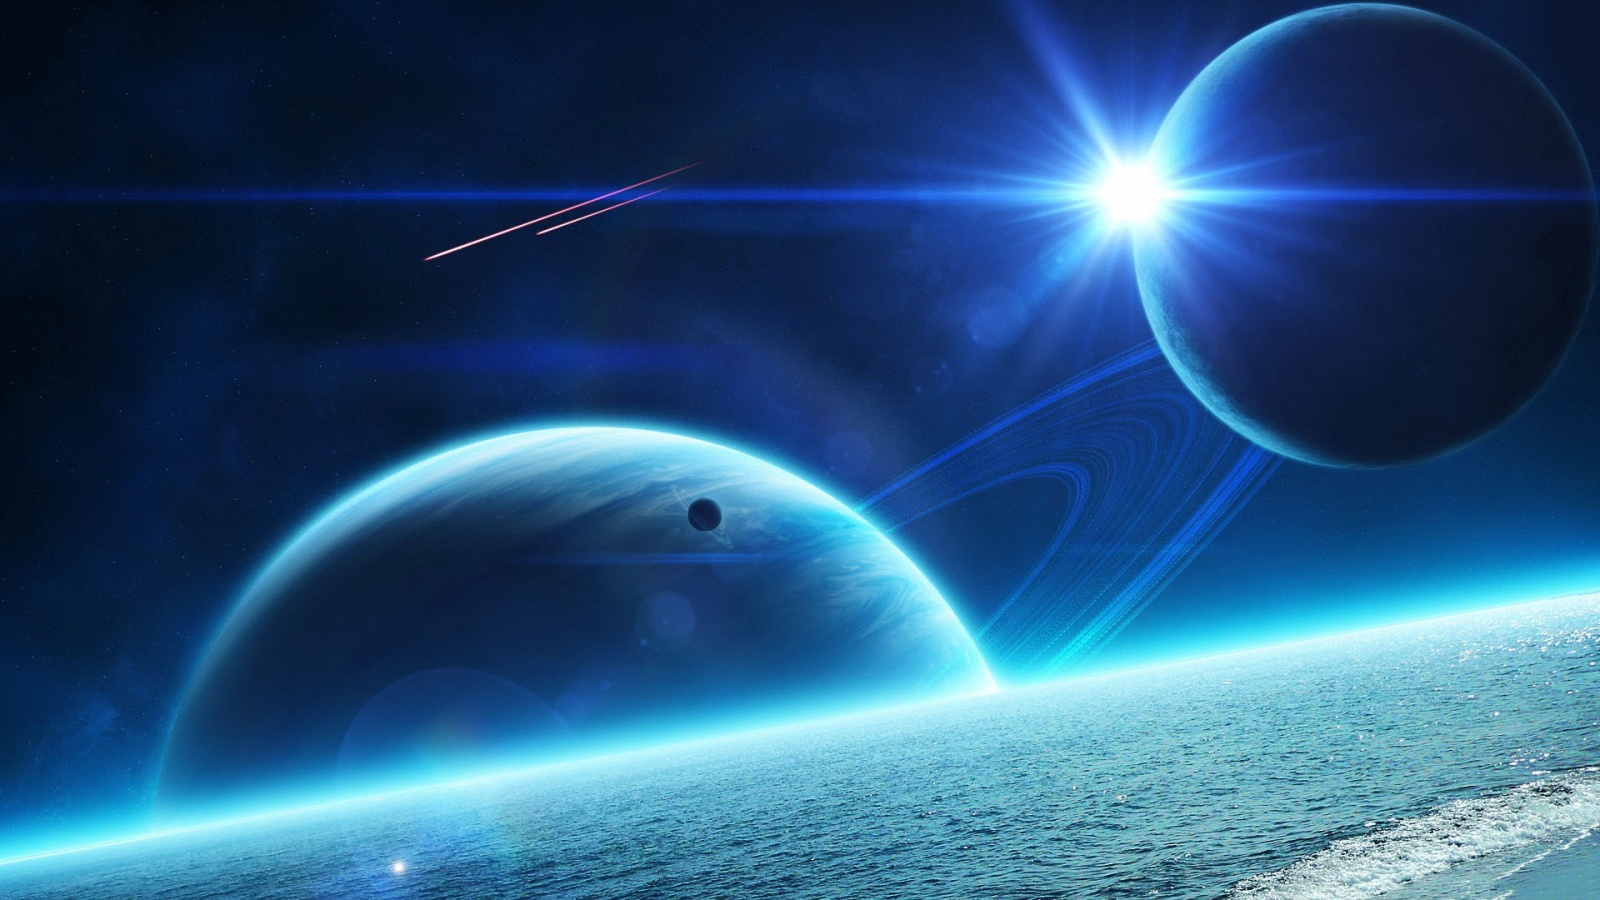 Blue space art wallpapers 1600x900 369923 - Space wallpaper 1600x900 ...